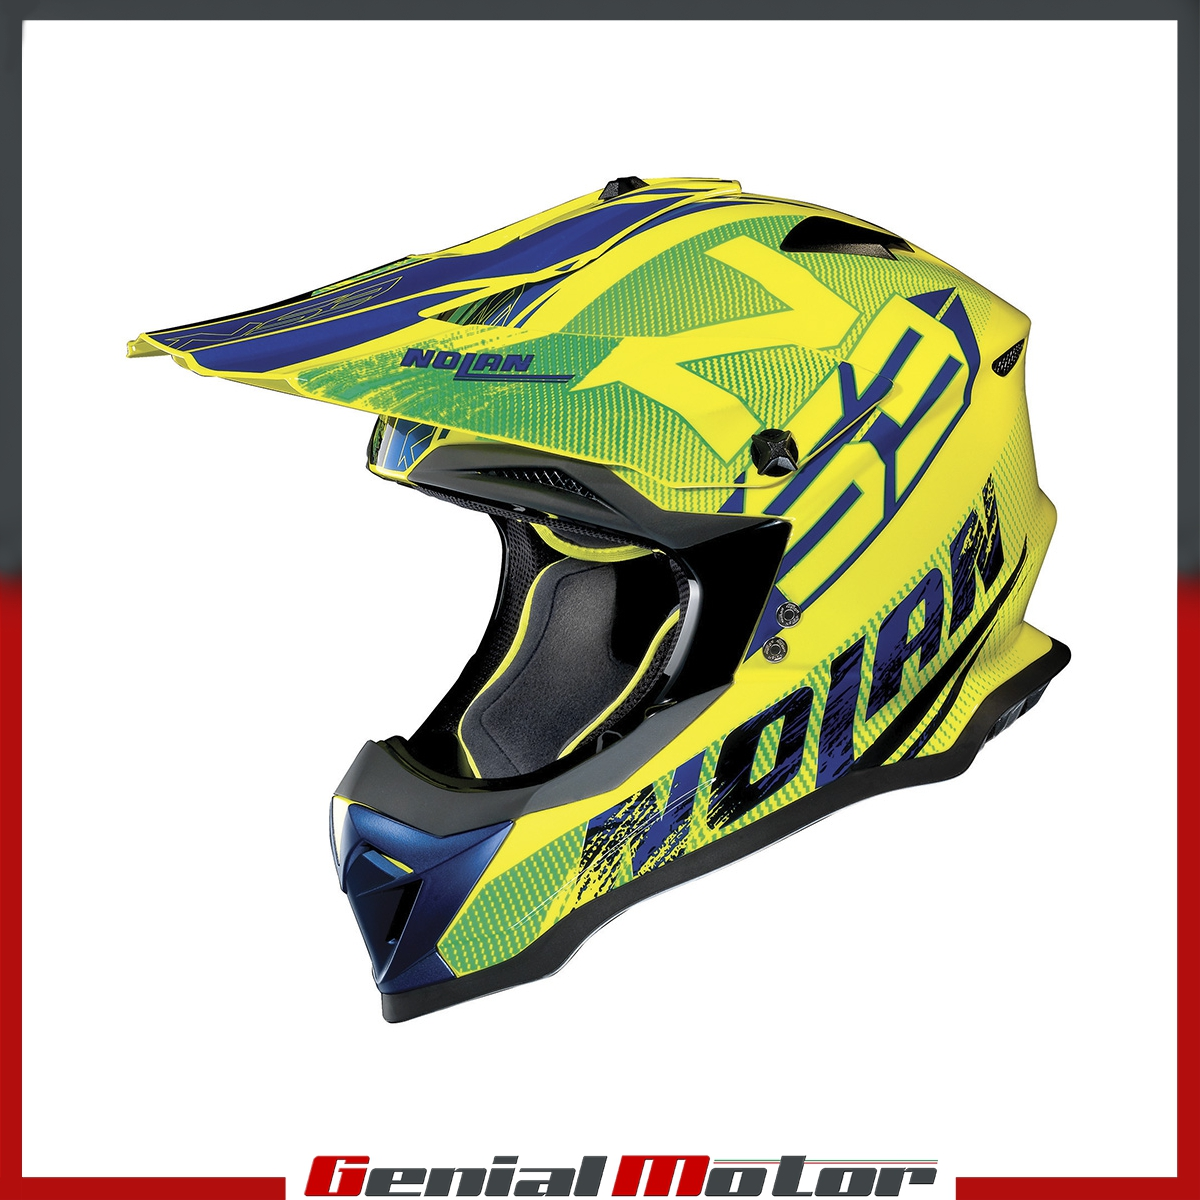 CASQUE-NOLAN-N53-WHOOP-049-TAILLE-XL-LED-YELLOW